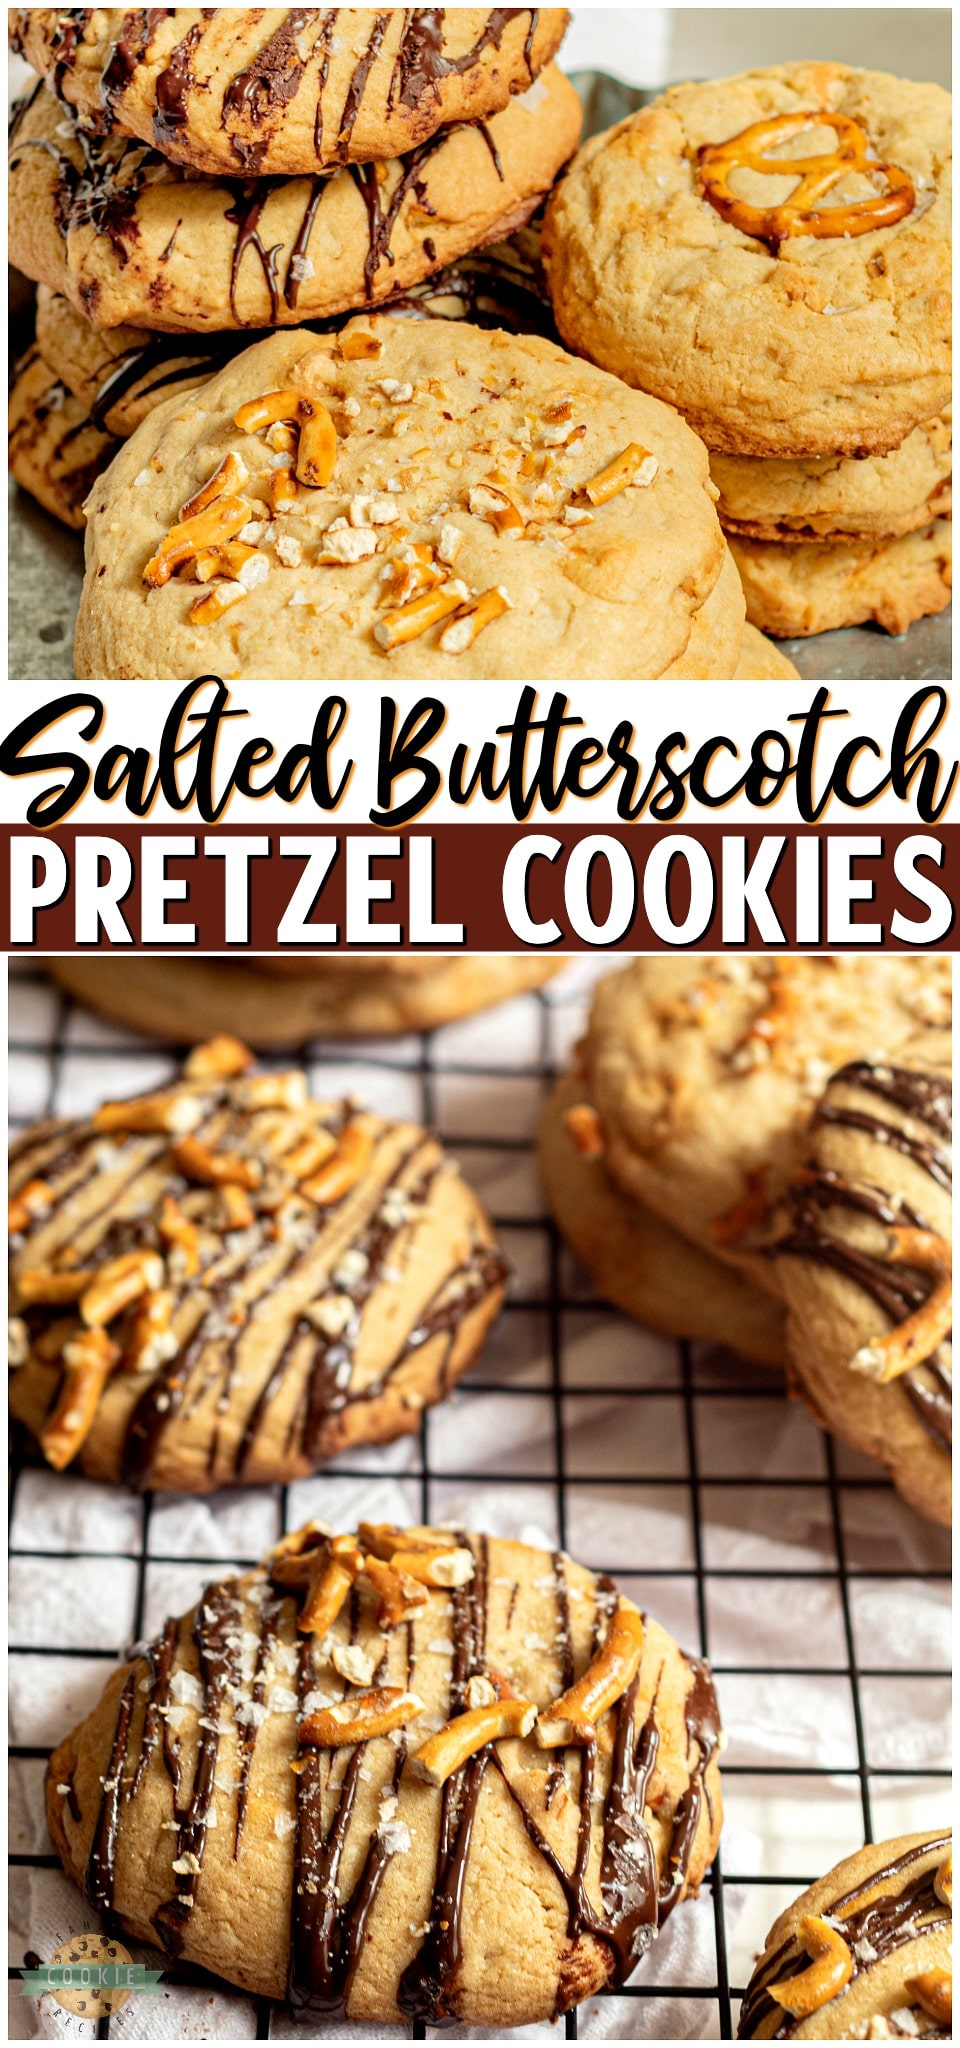 Sea Salt Butterscotch Pretzel Cookies are sweet and salty cookies that pack a little crunch and a whole lot of flavor! With sea salt, pretzels, butterscotch chips, and a chocolate drizzle these loaded cookies are a family favorite! #cookies #salted #butterscotch #pretzels #baking #dessert #easyrecipe from FAMILY COOKIE RECIPES via @familycookierecipes